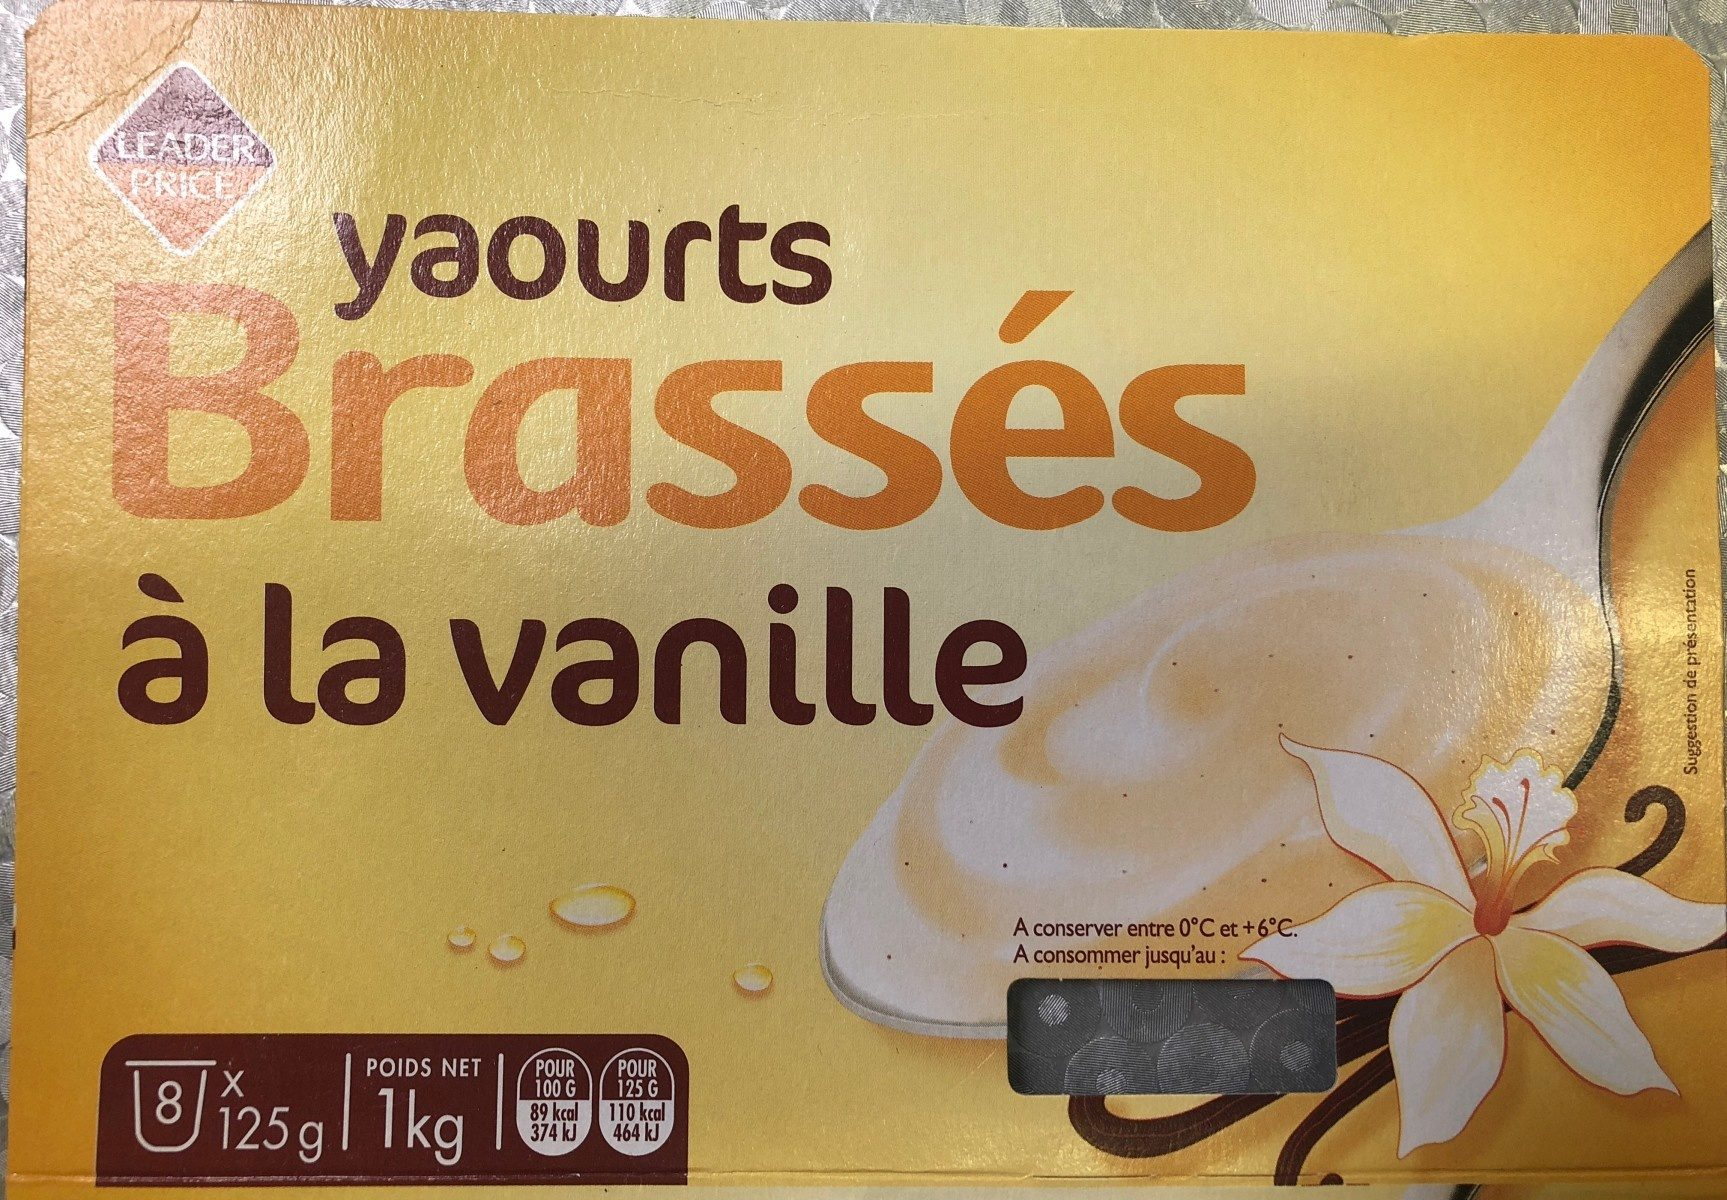 Yaourts Brassés vanille - Product